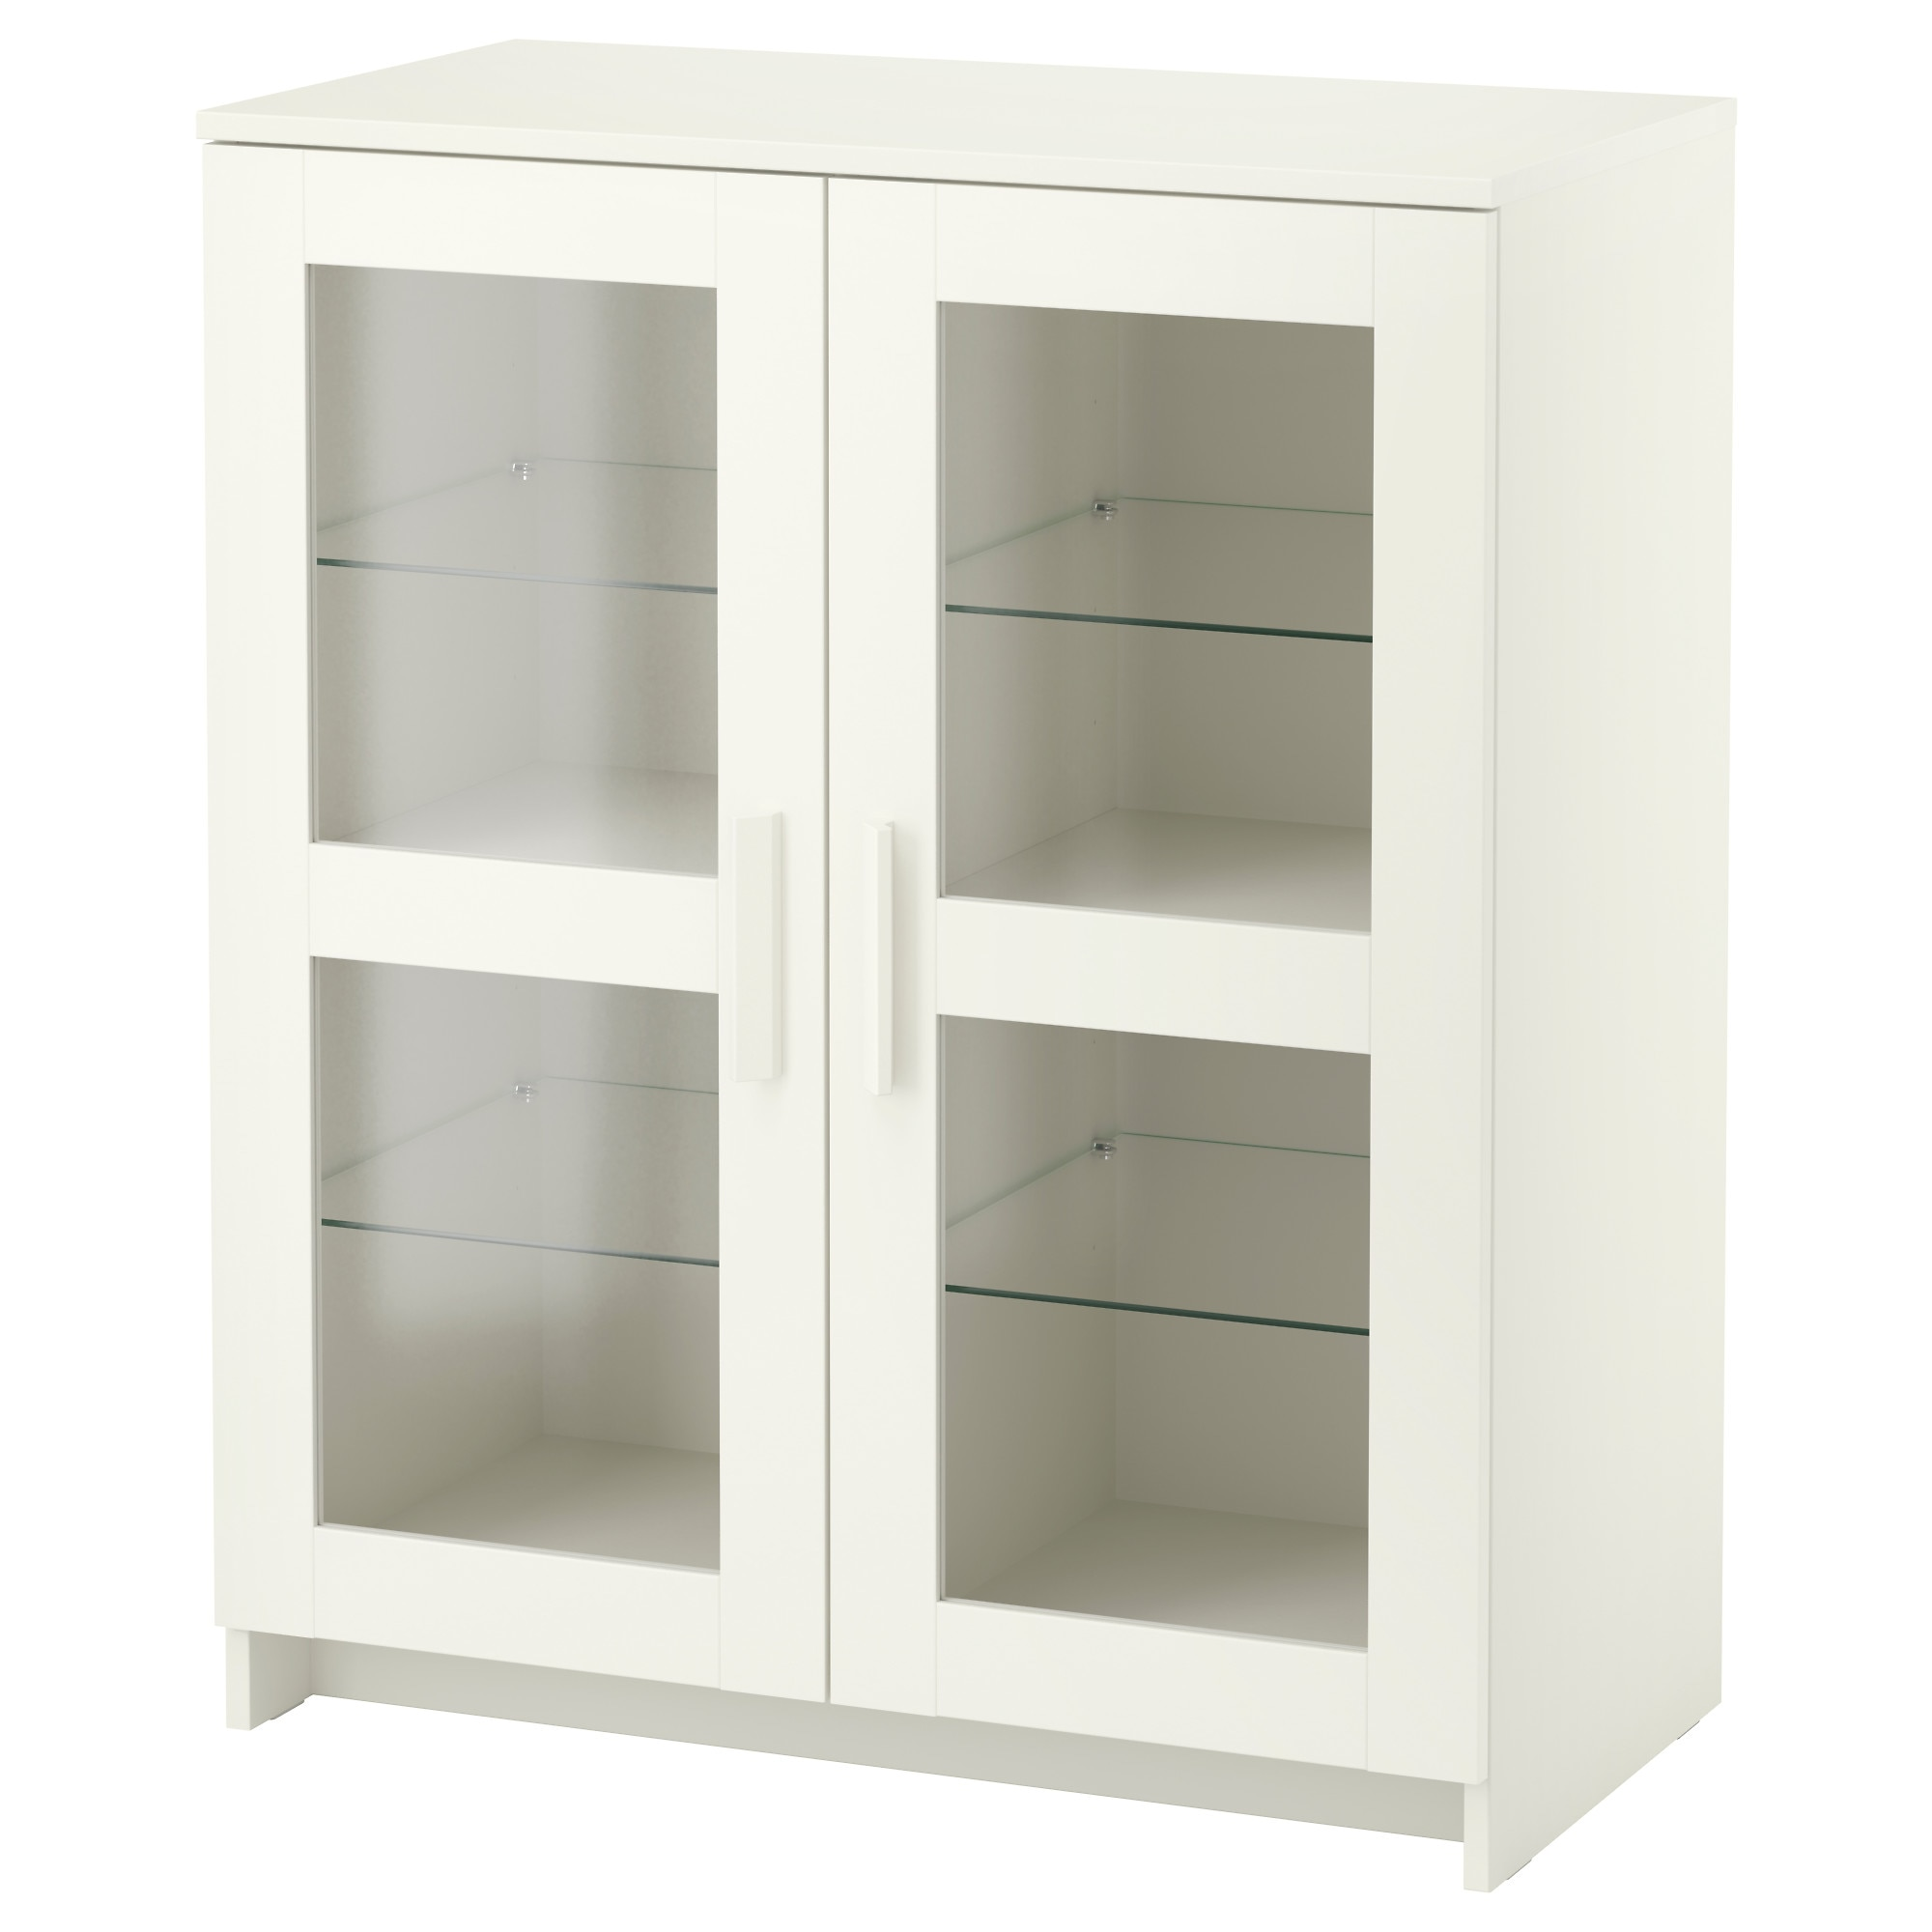 Ikea dining room storage - Brimnes Cabinet With Doors Glass White Width 30 3 4 Depth